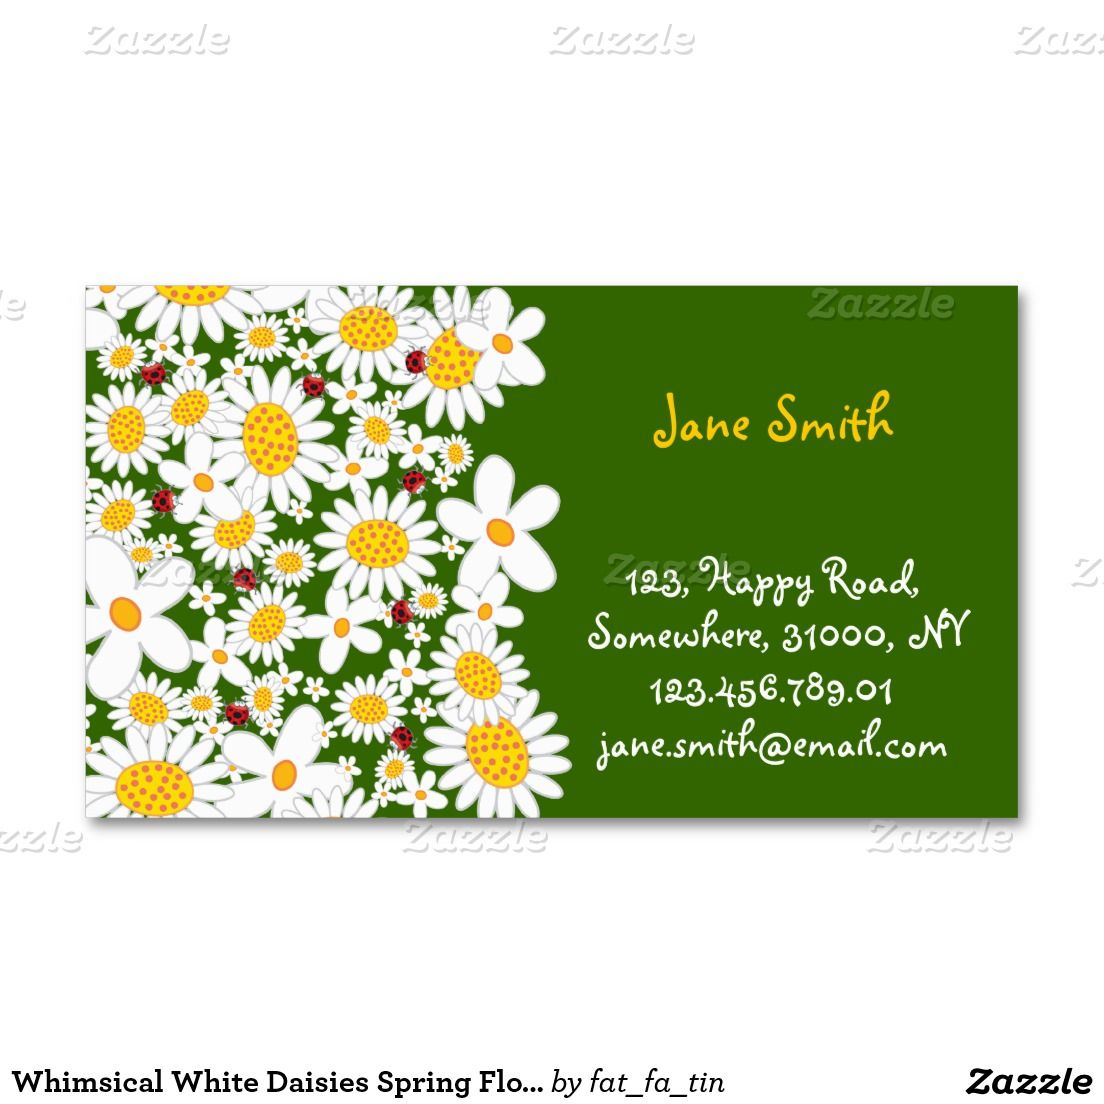 Whimsical White Daisies Spring Flowers Ladybugs Double-Sided ...